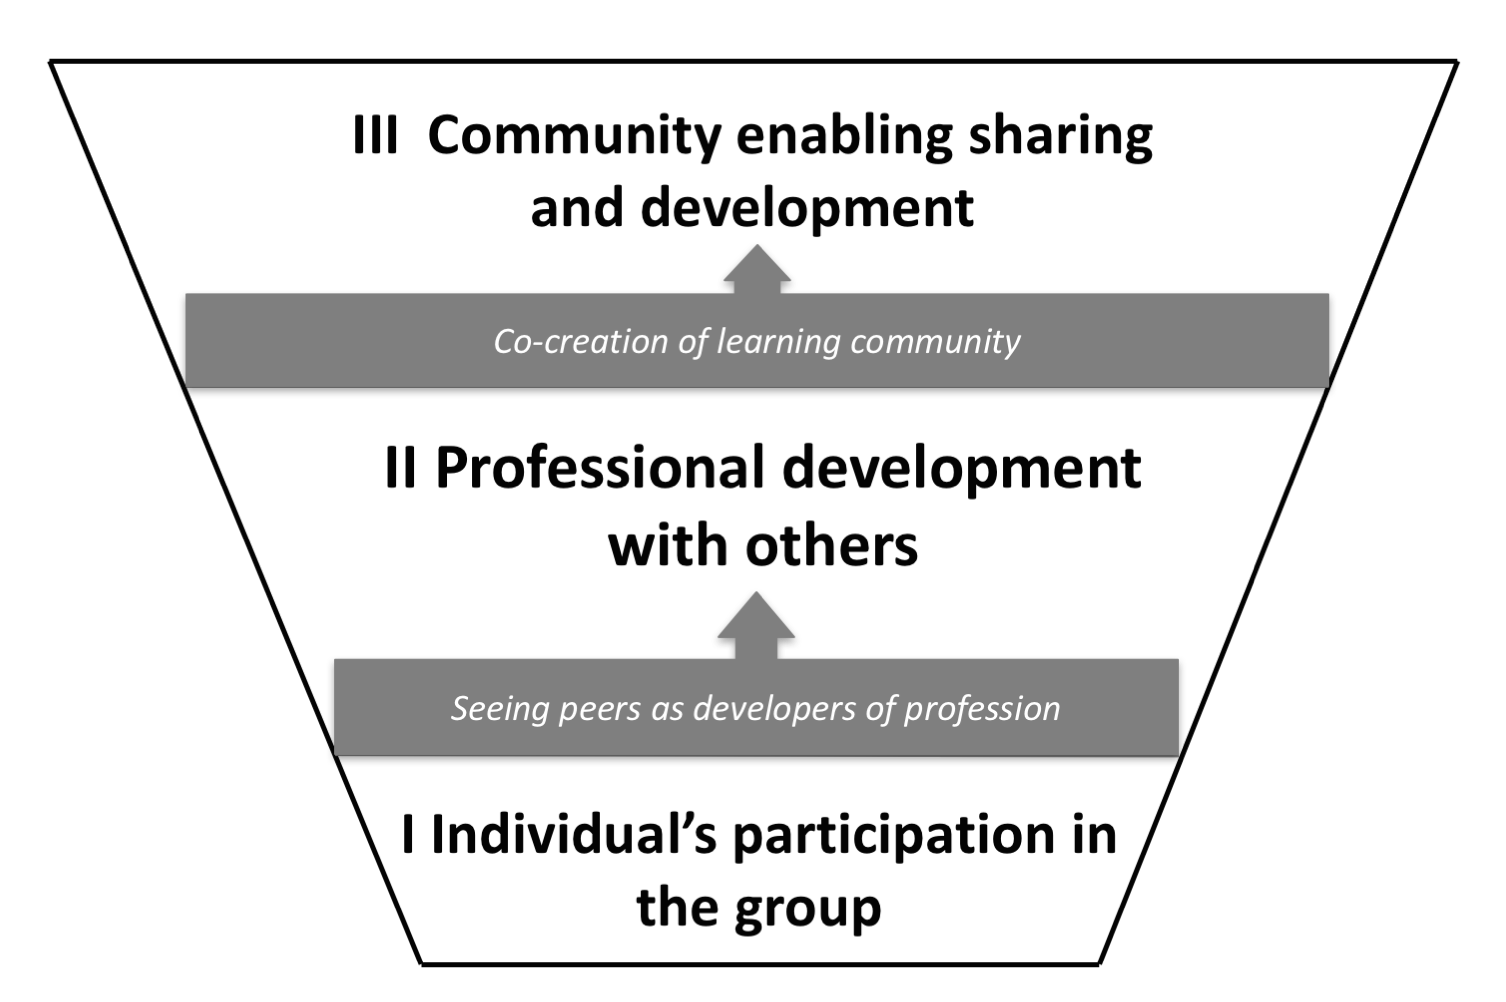 Hierarchically organized core categories of the phenomenon of peer groups and critical aspects expanding the categories